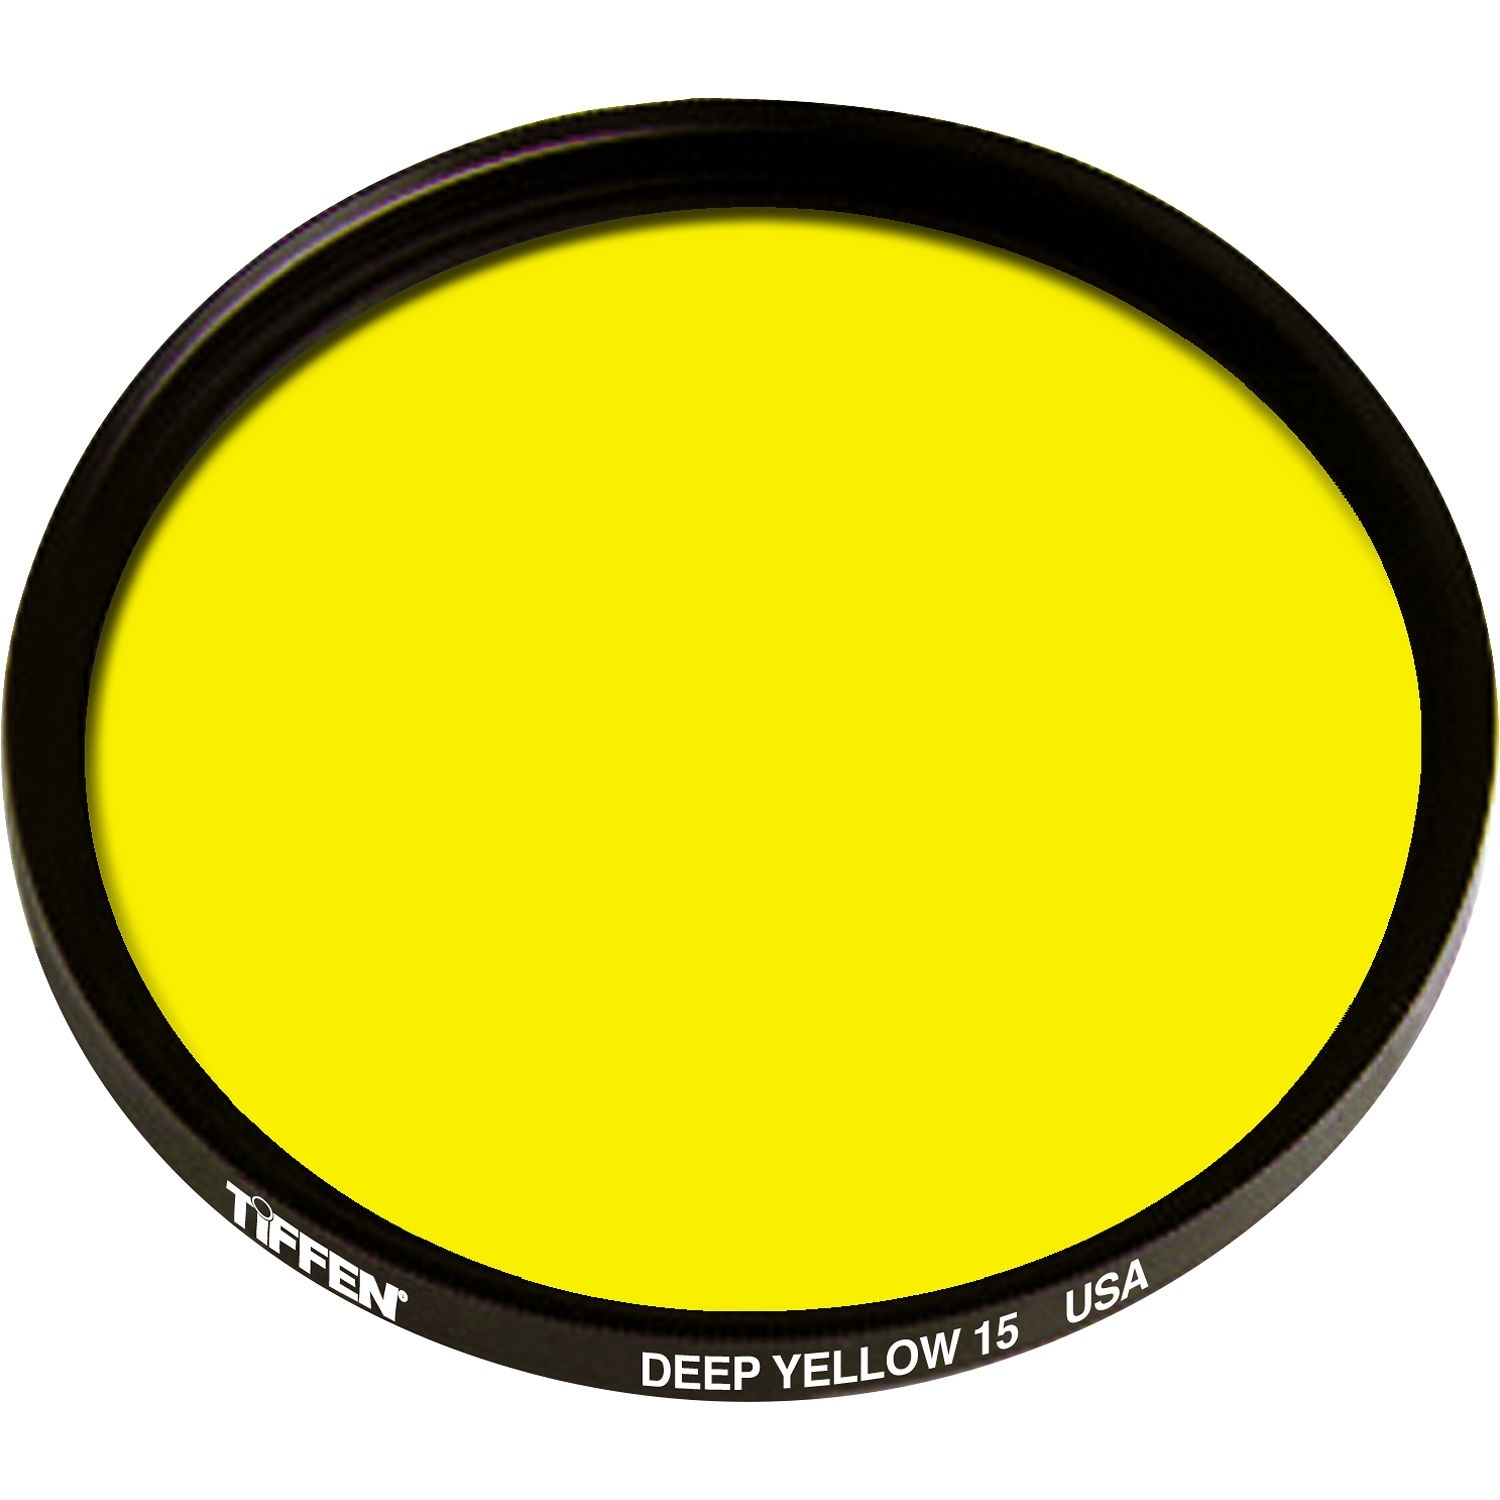 Tiffen 58mm Deep Yellow 15 Glass Filter for Black & White Film